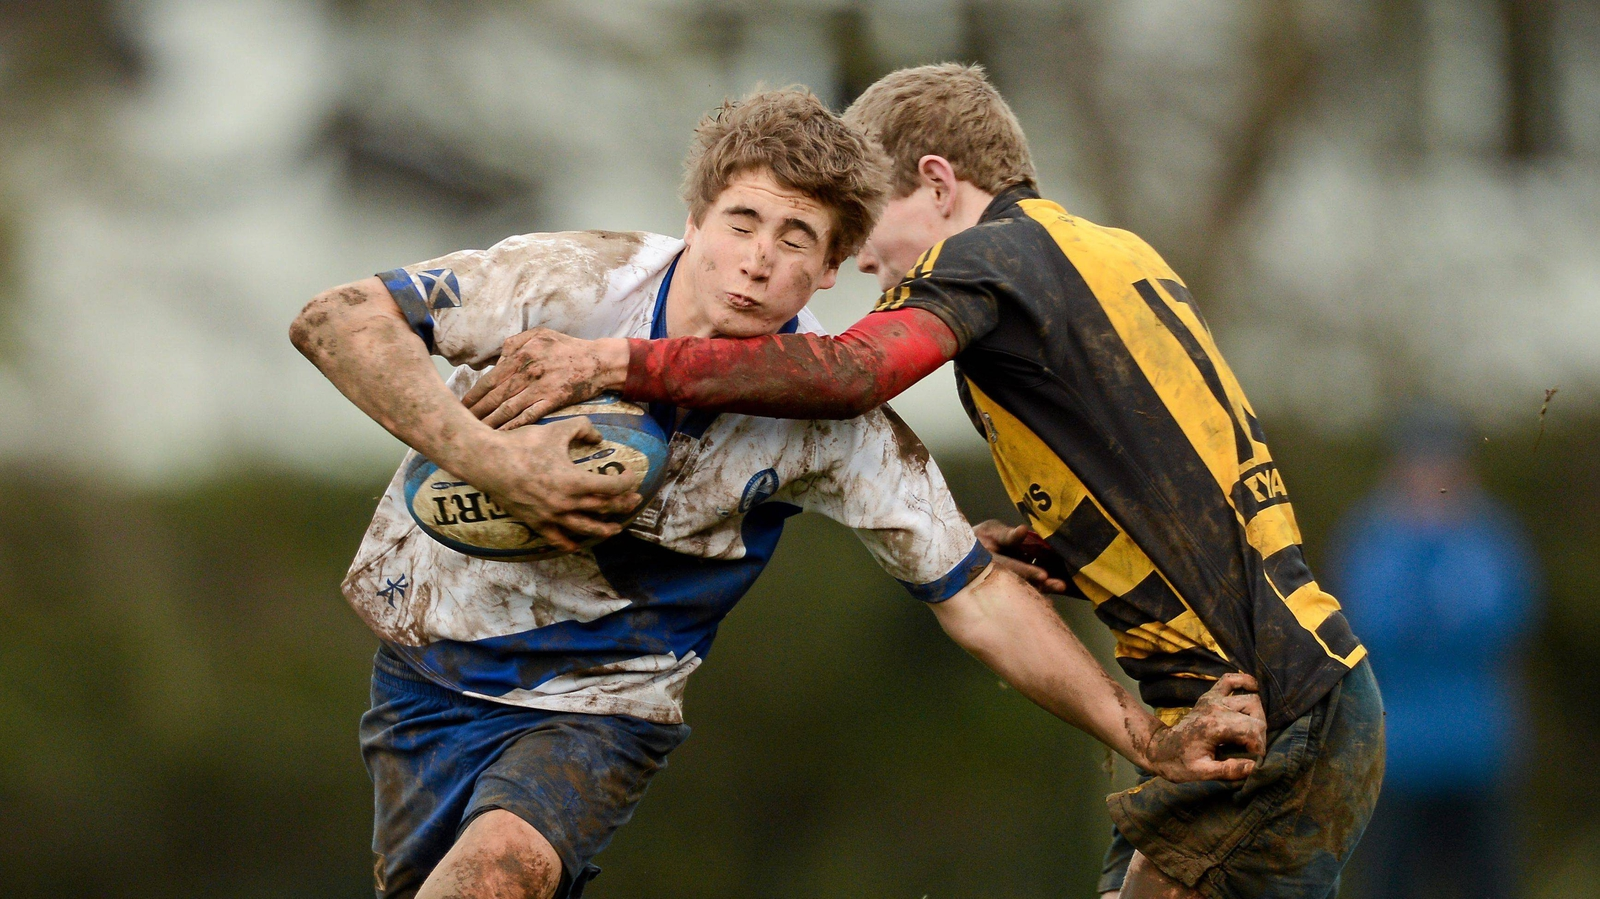 Image - Jordan Larmour in action for St Andrews College in 2013